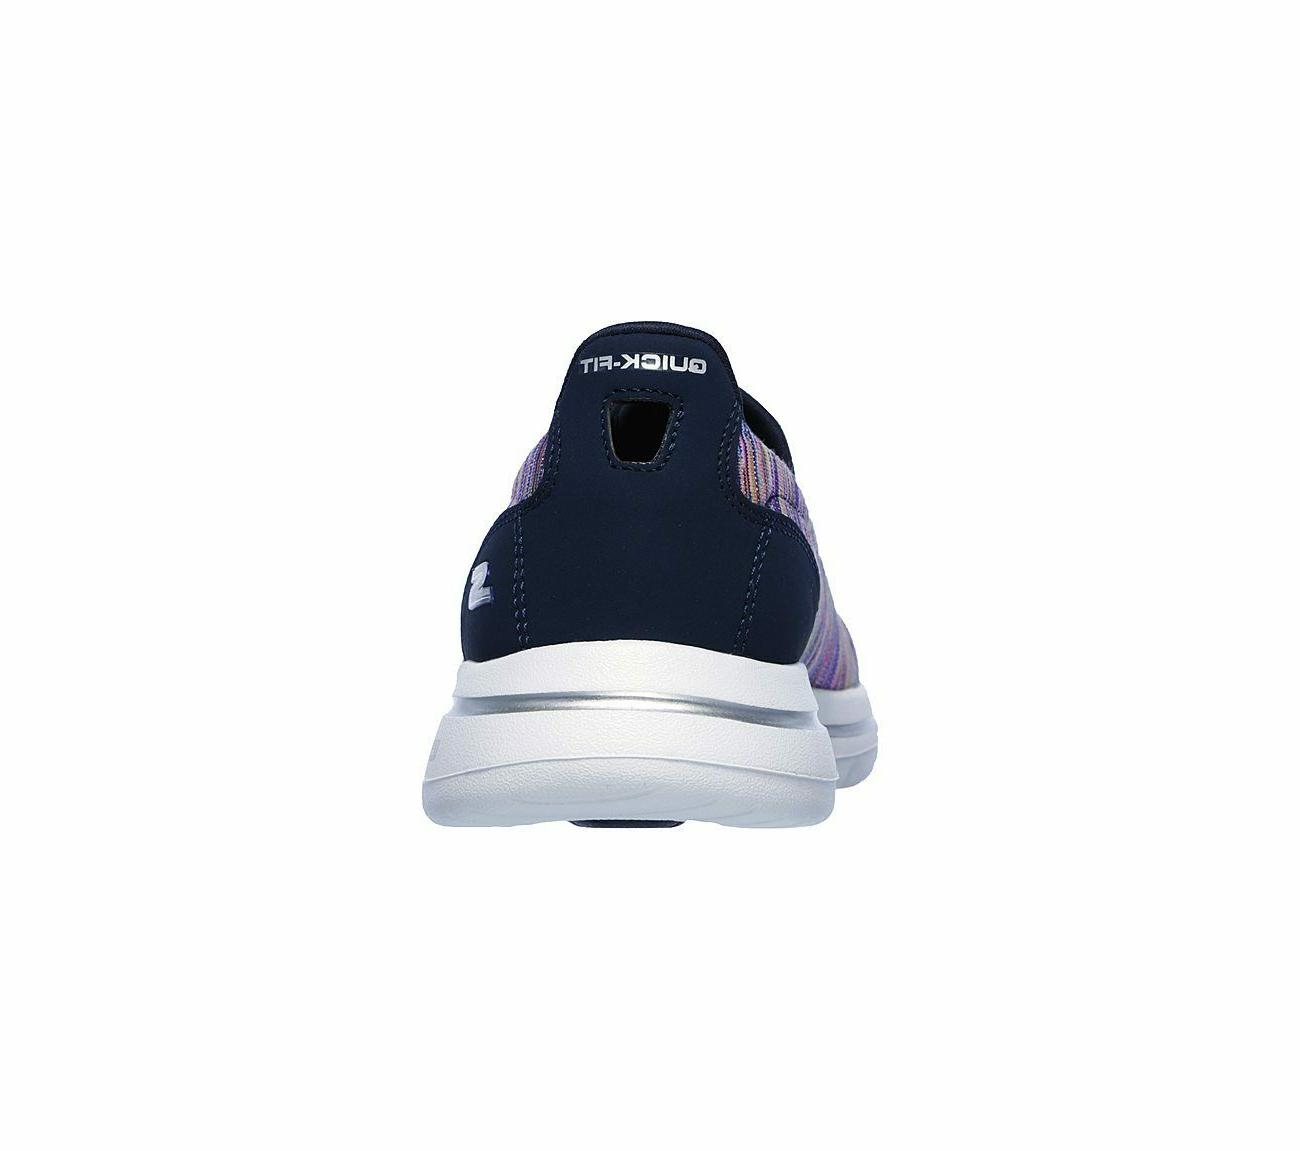 Skechers Shoes Go Casual Slip On Sporty